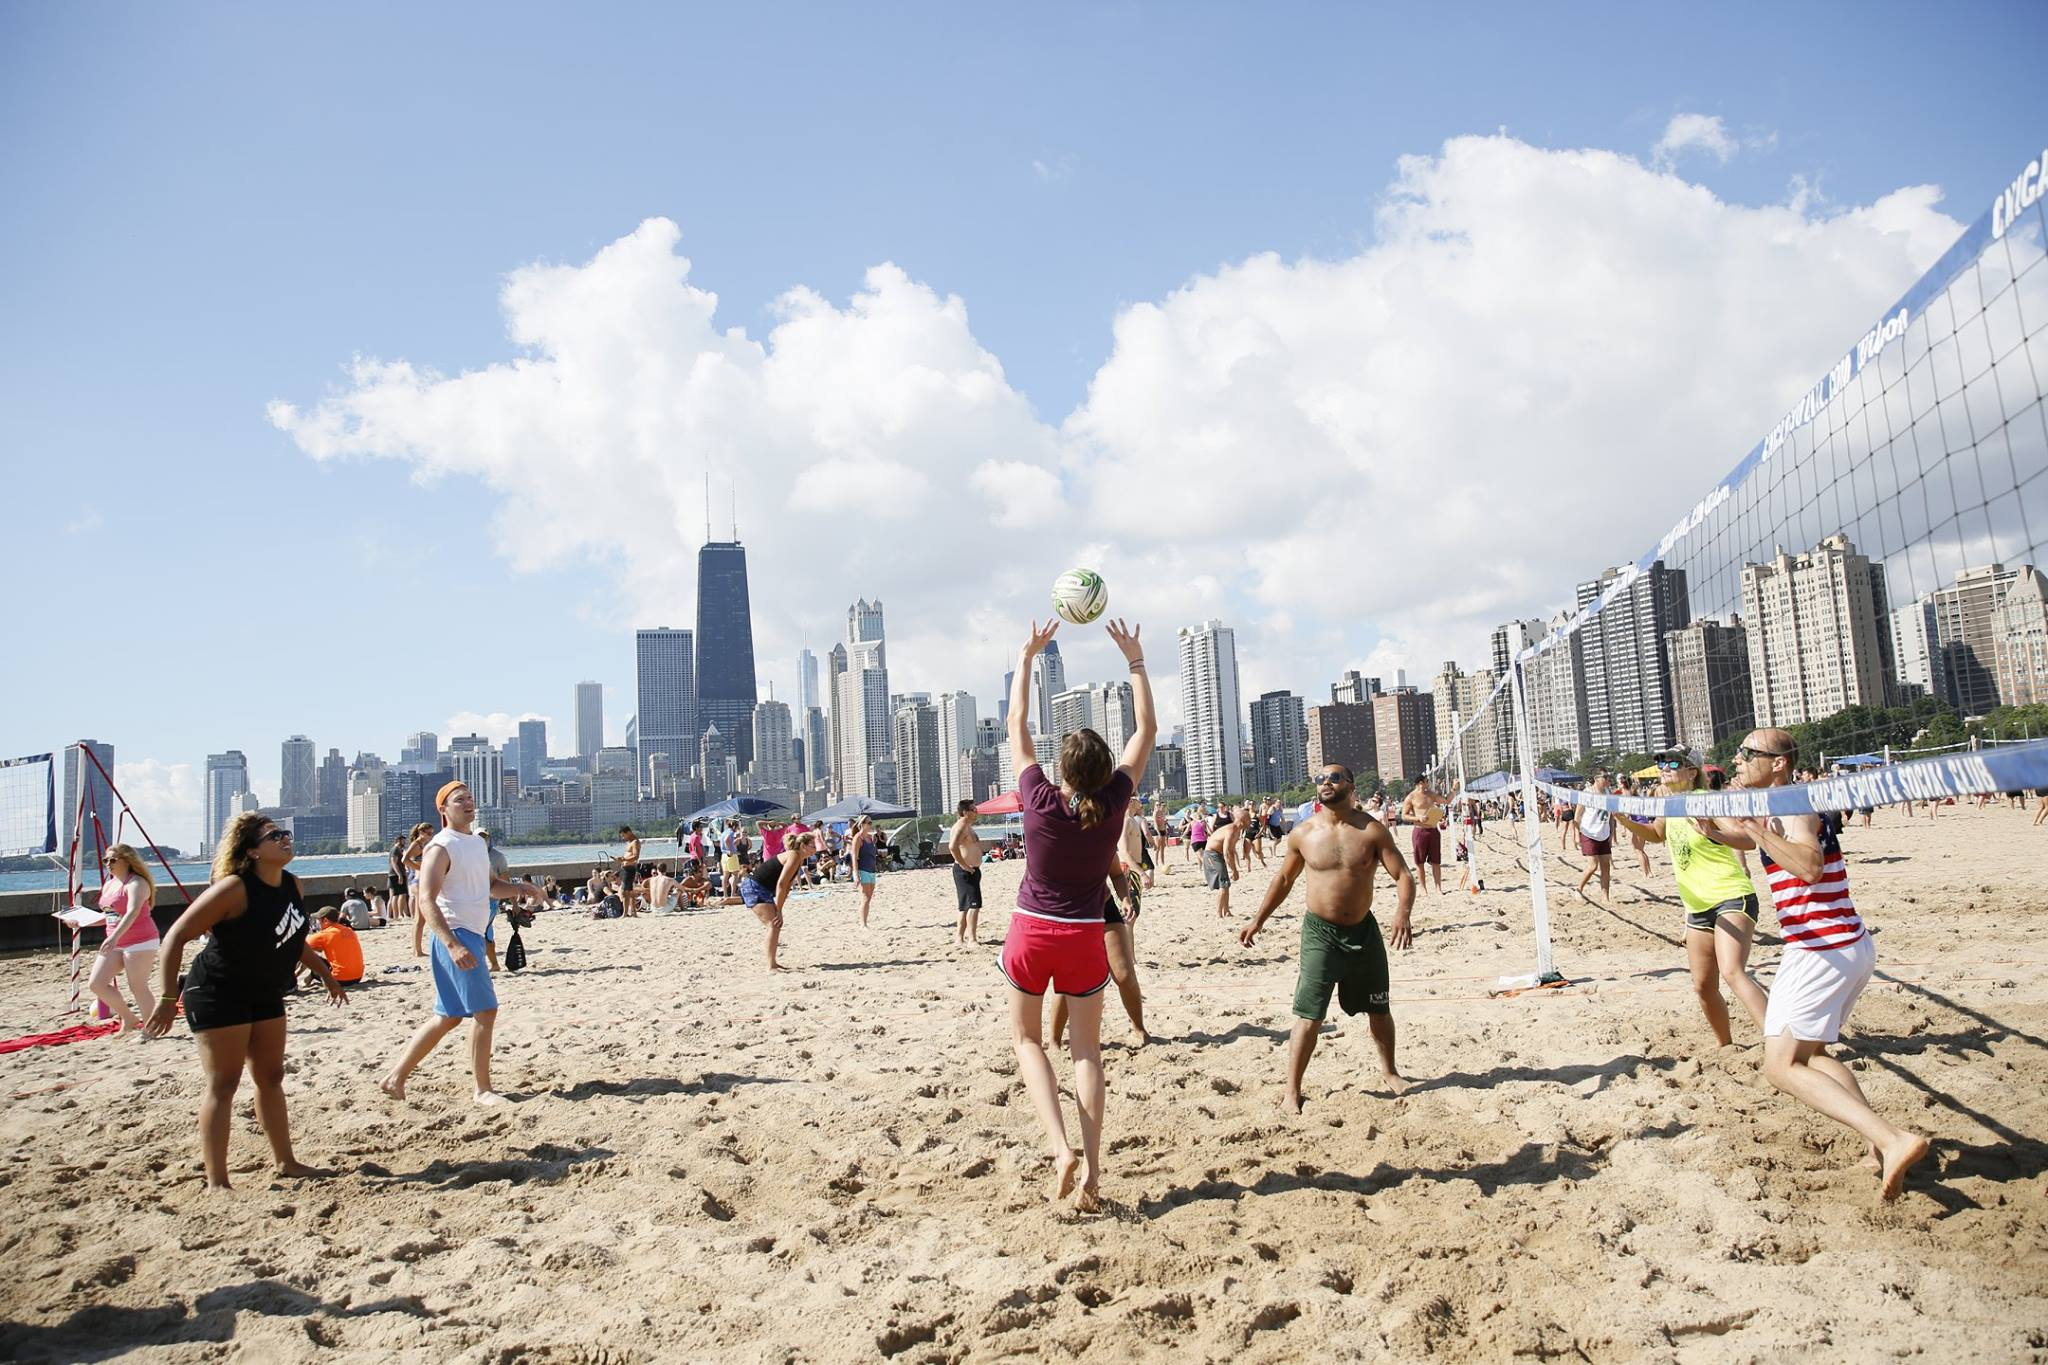 mix sports and socializing in chicago